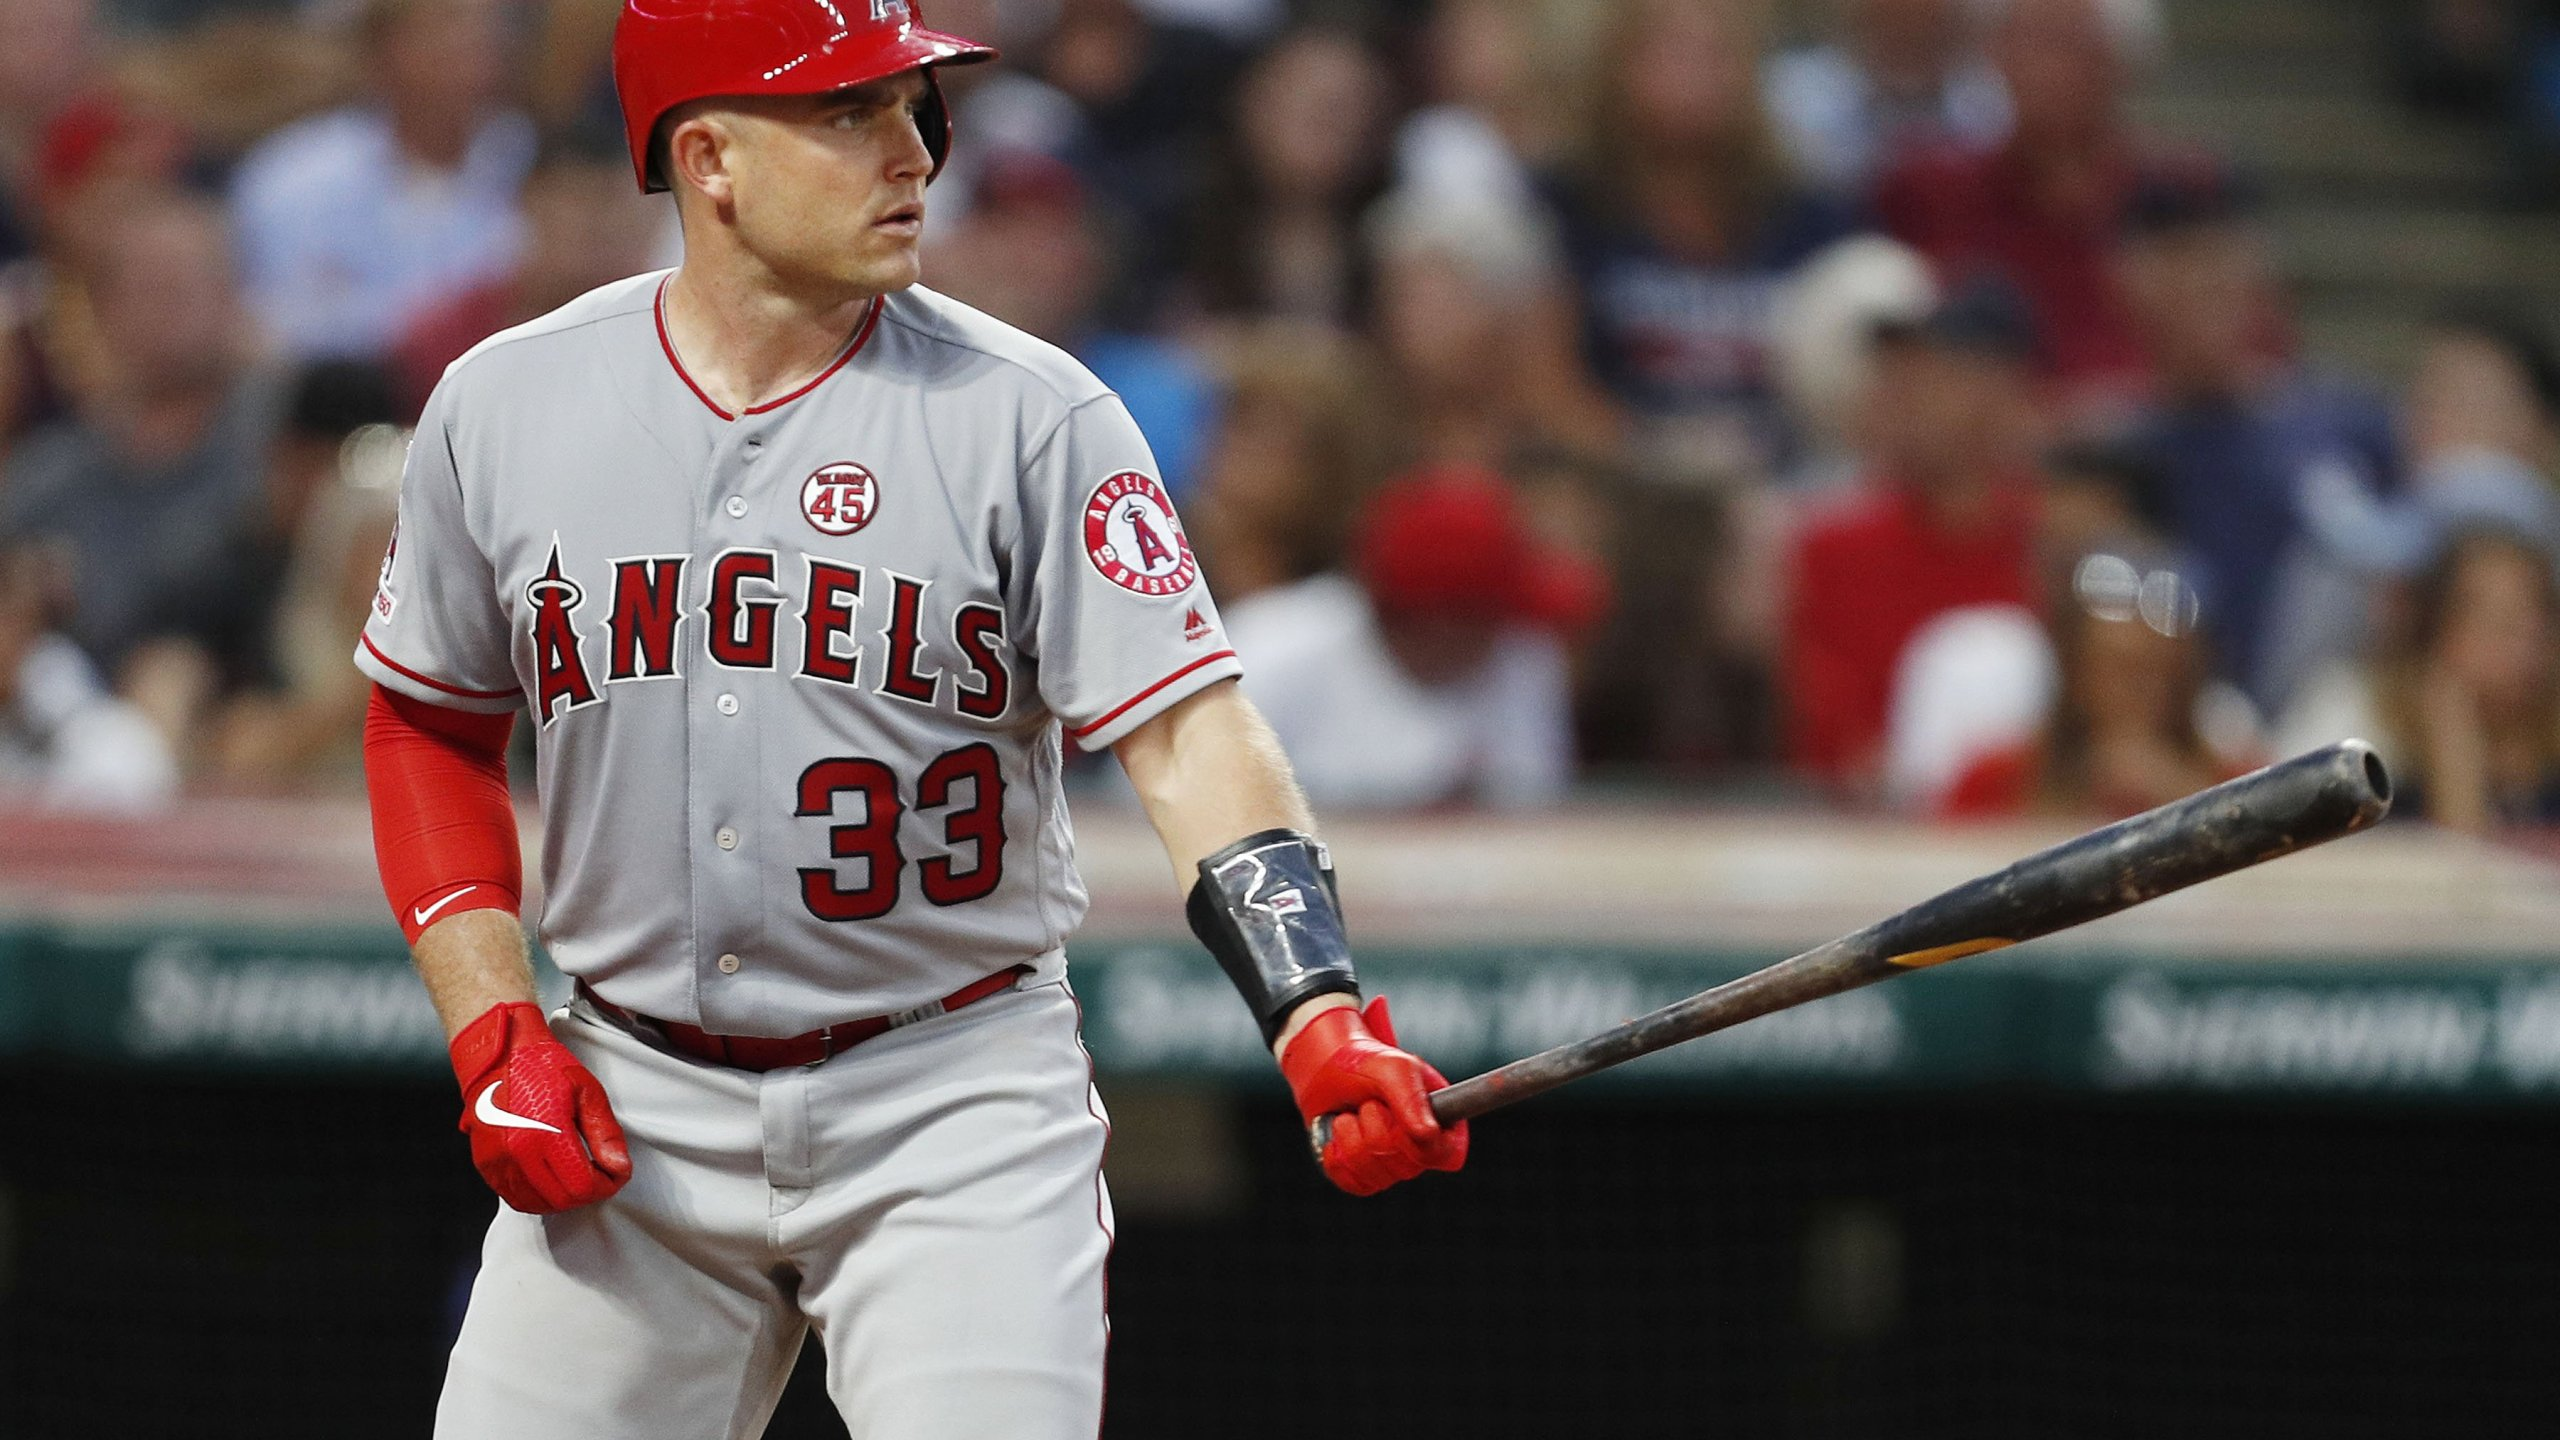 Max Stassi of the Los Angeles Angels of Anaheim stands in to bat against the Cleveland Indians in the fifth inning at Progressive Field on Aug. 2, 2019 in Cleveland, Ohio. (Credit: David Maxwell/Getty Images)